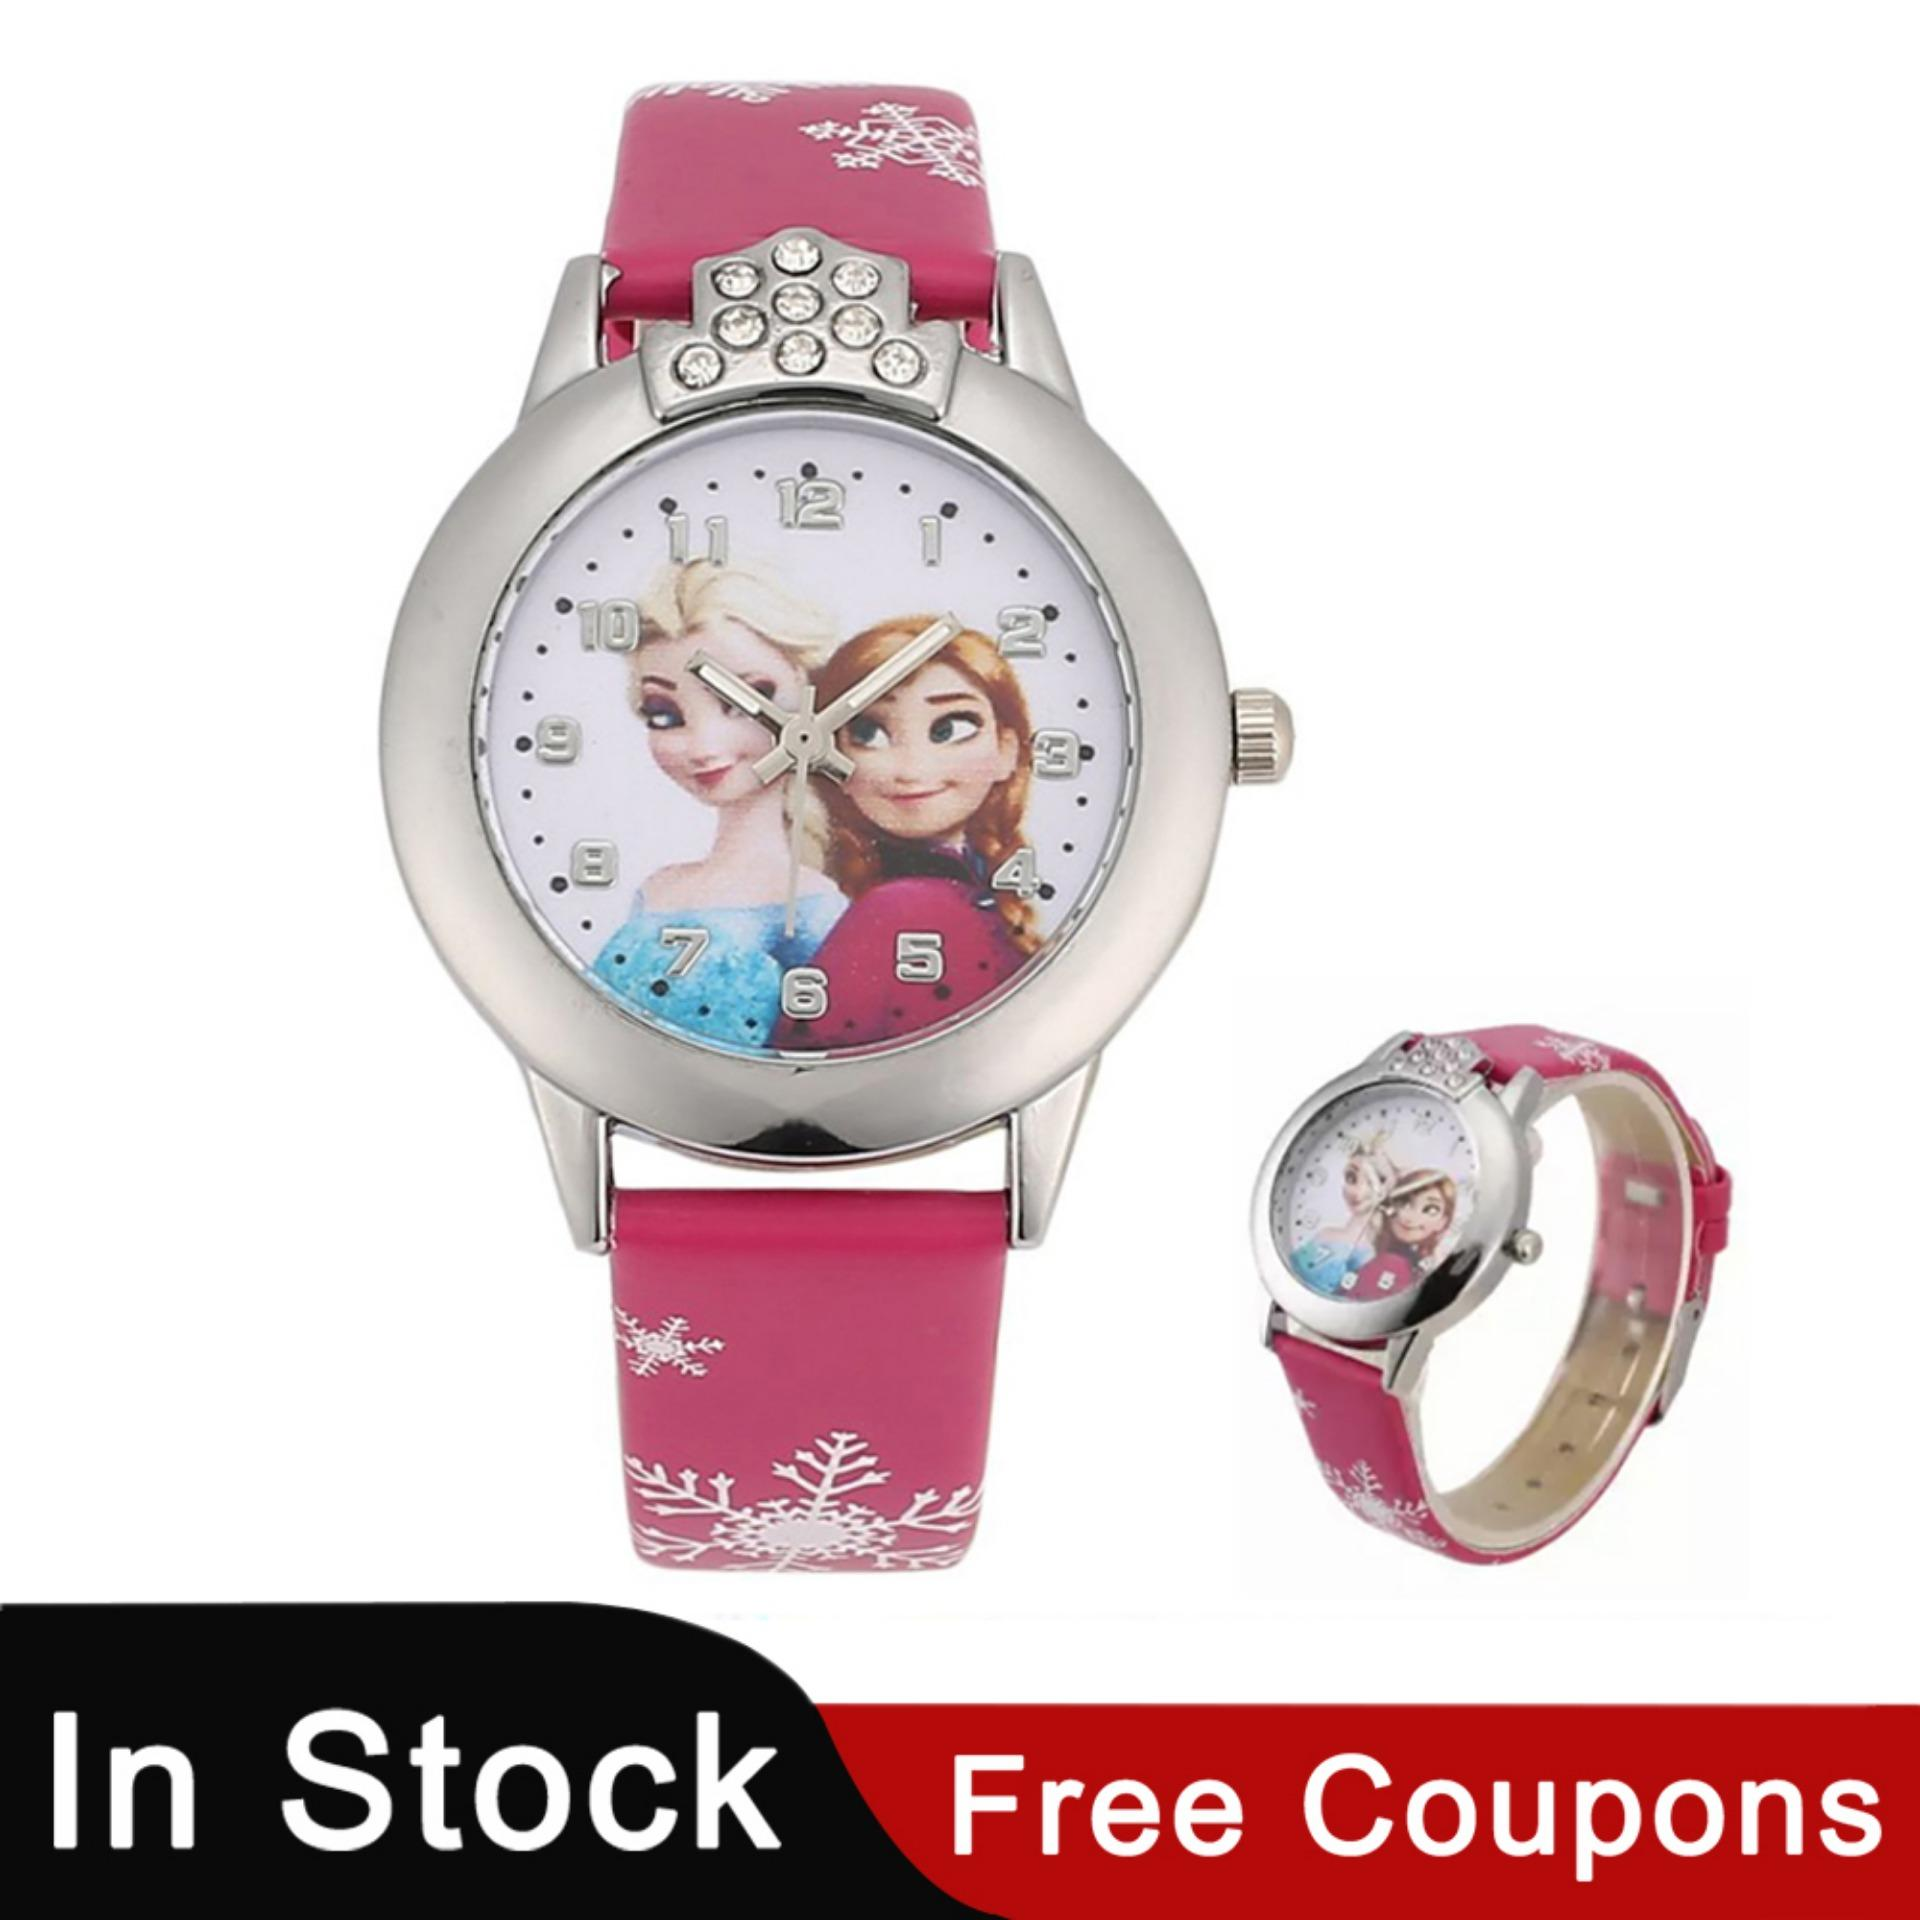 Children's Watches Kids Watch Fashion Cute Cartoon Unicorn Leather Strap Wristwatch Classic Digital Girl Boy Watch Child Quartz Watch